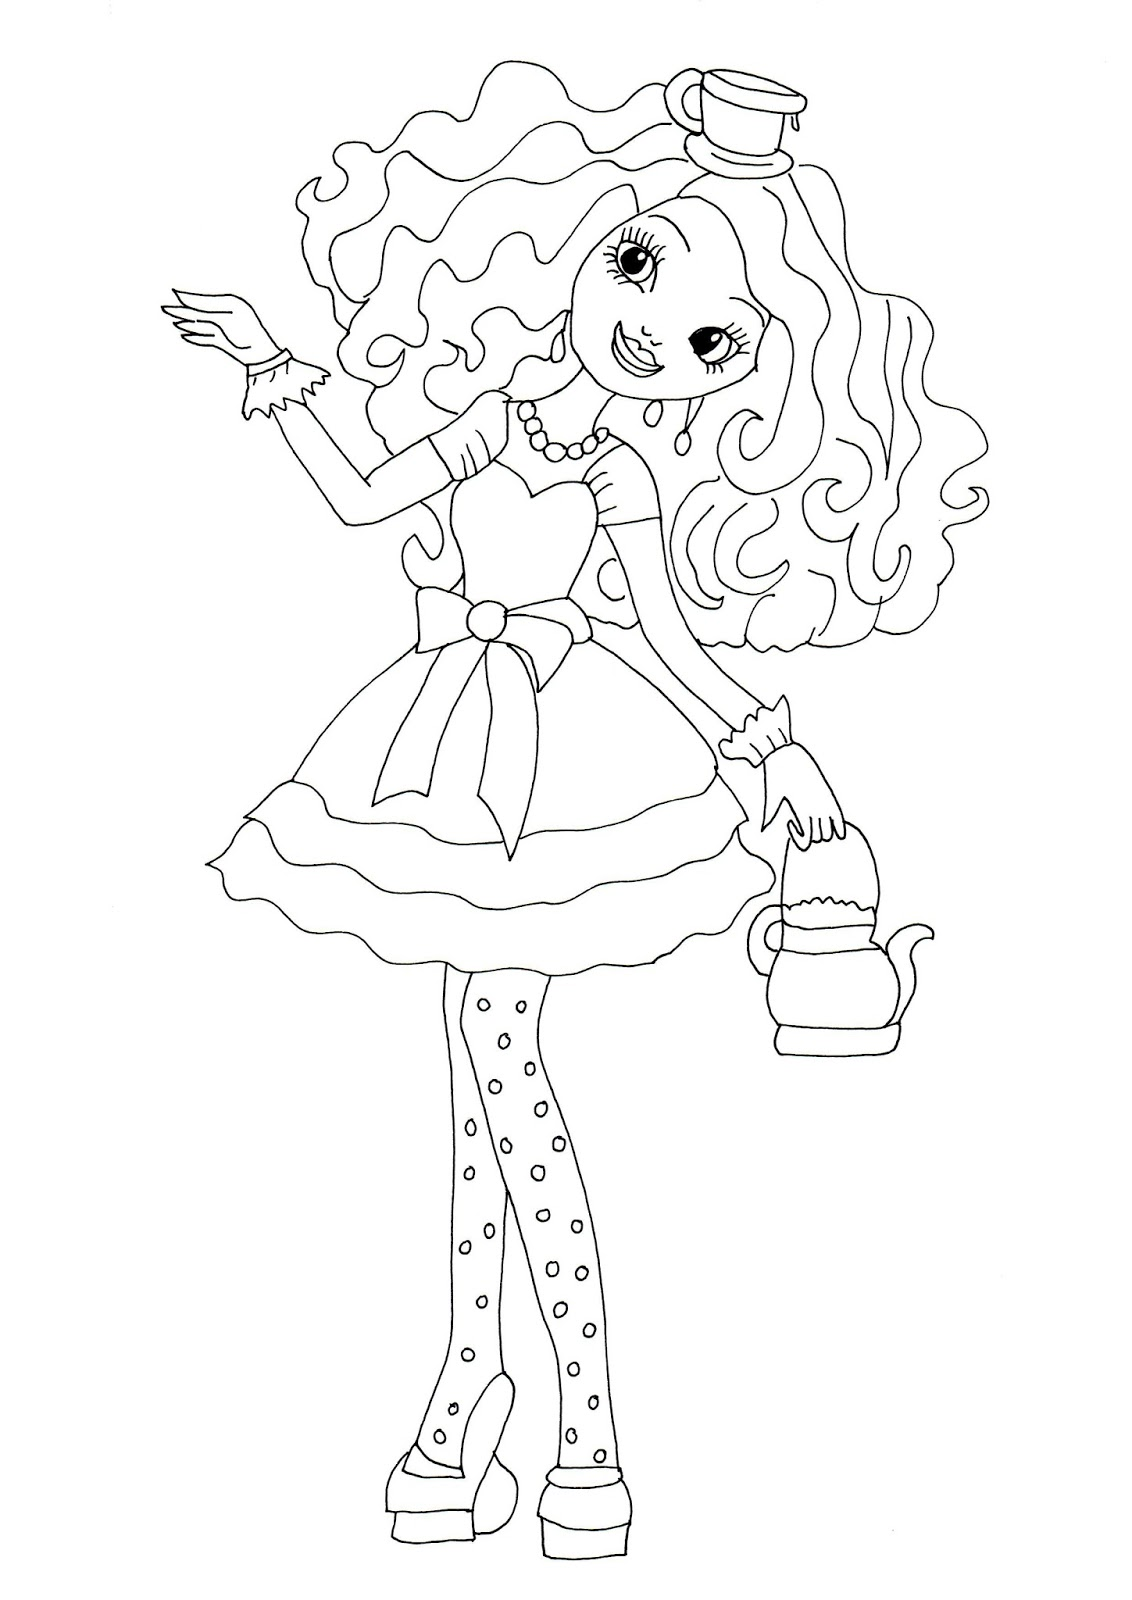 Free Ever After High Coloring Pages, Download Free Clip Art, Free ...   1600x1132